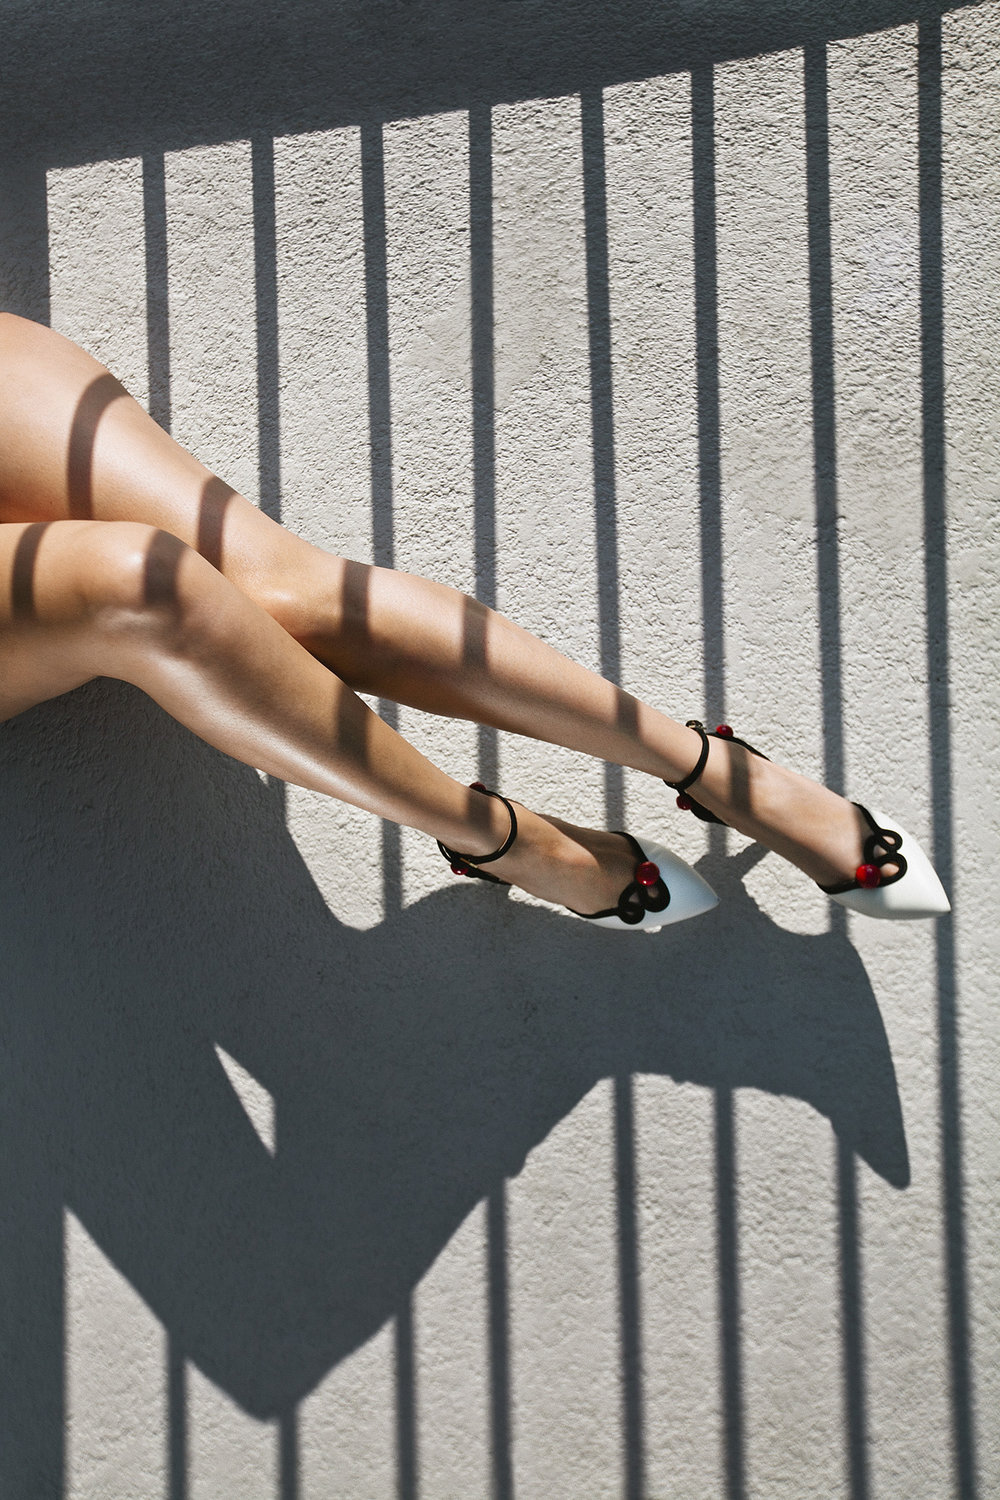 lifestyle-editorial-washington-dc-malek-naz-photography-legs-shoes.jpg